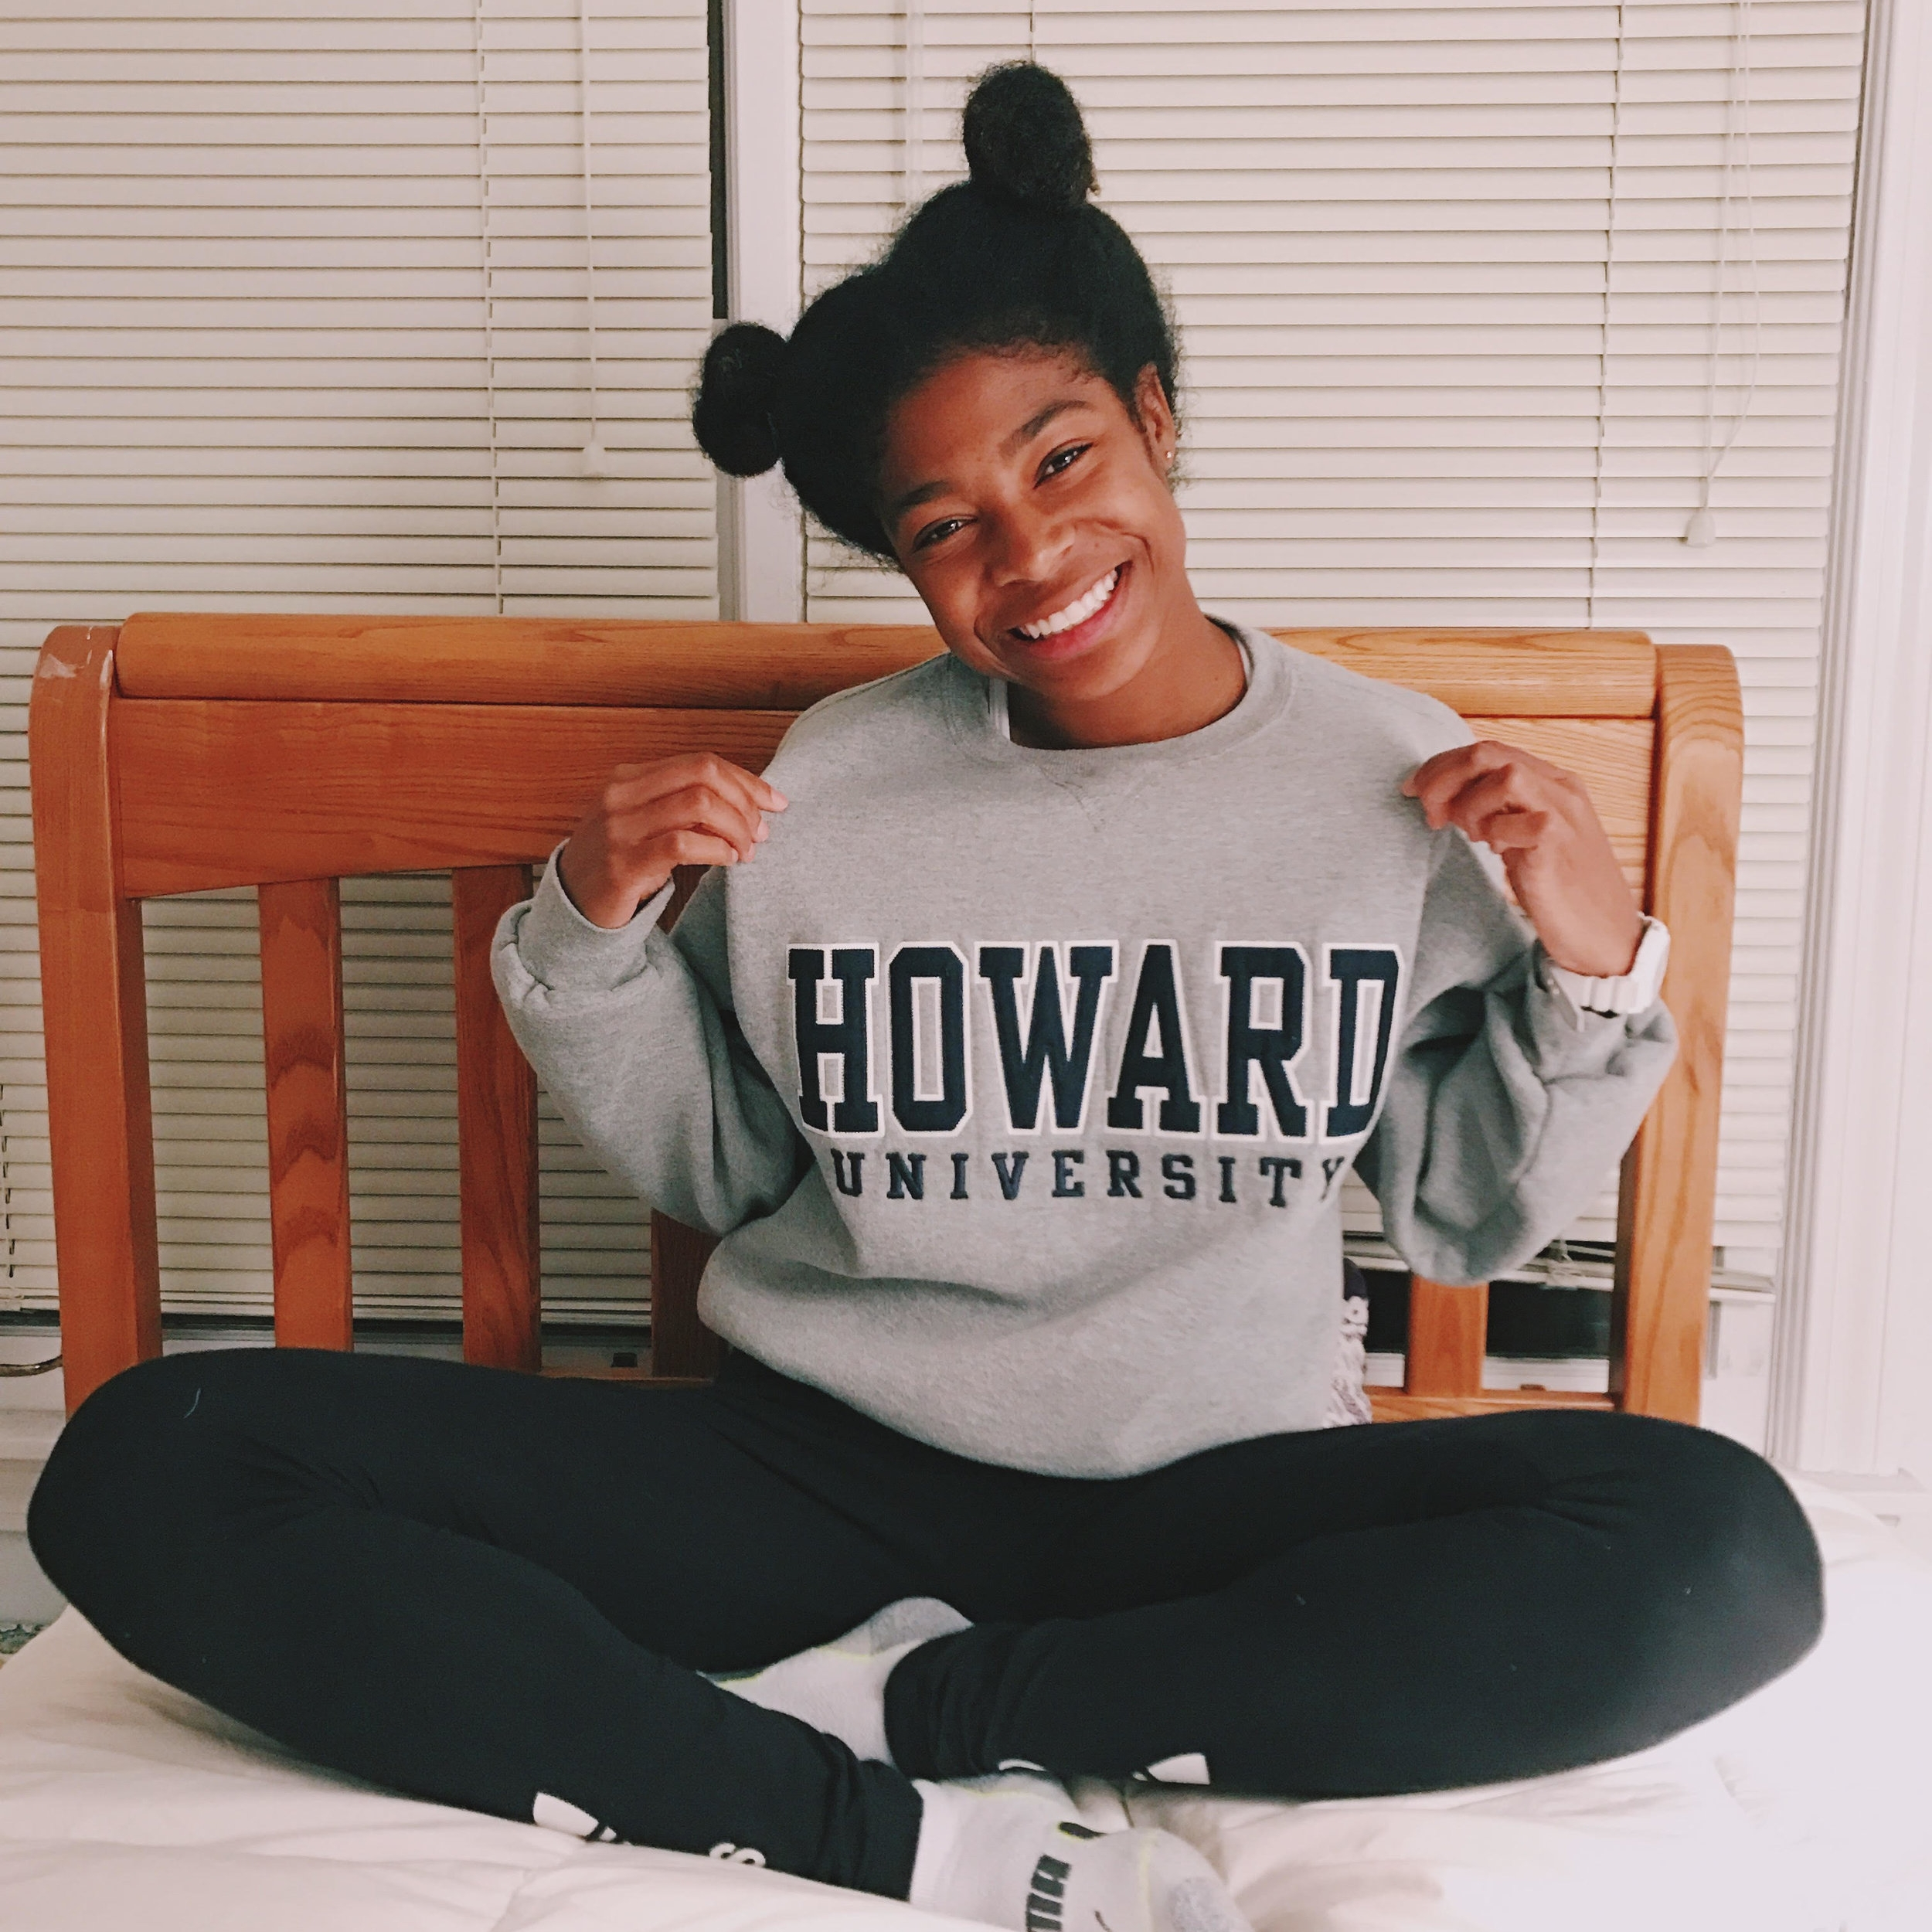 The-Everyday-Lemonade_Howard-University-Student-HU21-Jean-Jackson_170721.jpg